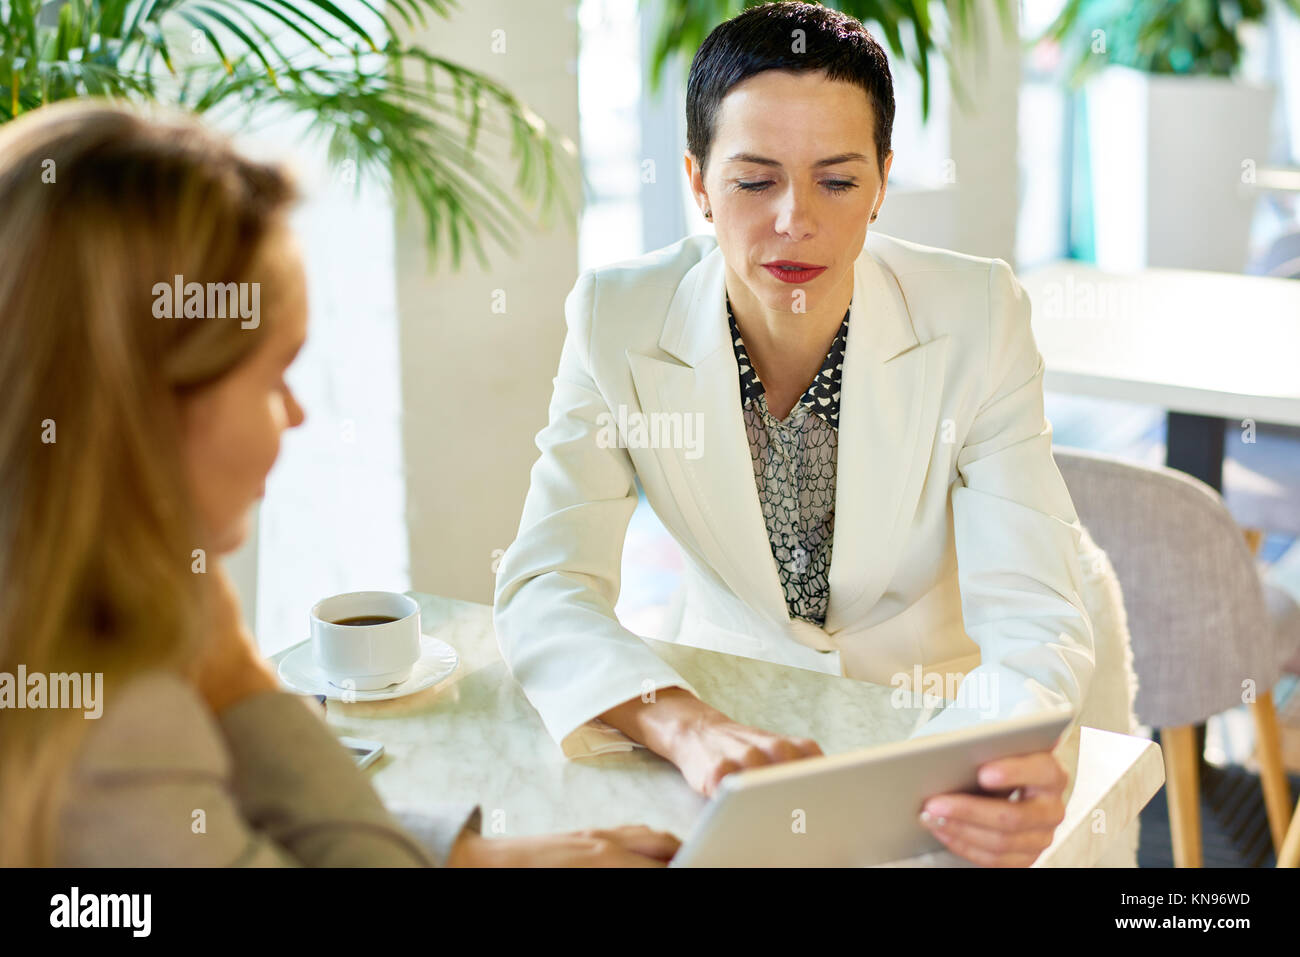 Successful Businesswoman Meeting with Partner in Cafe - Stock Image